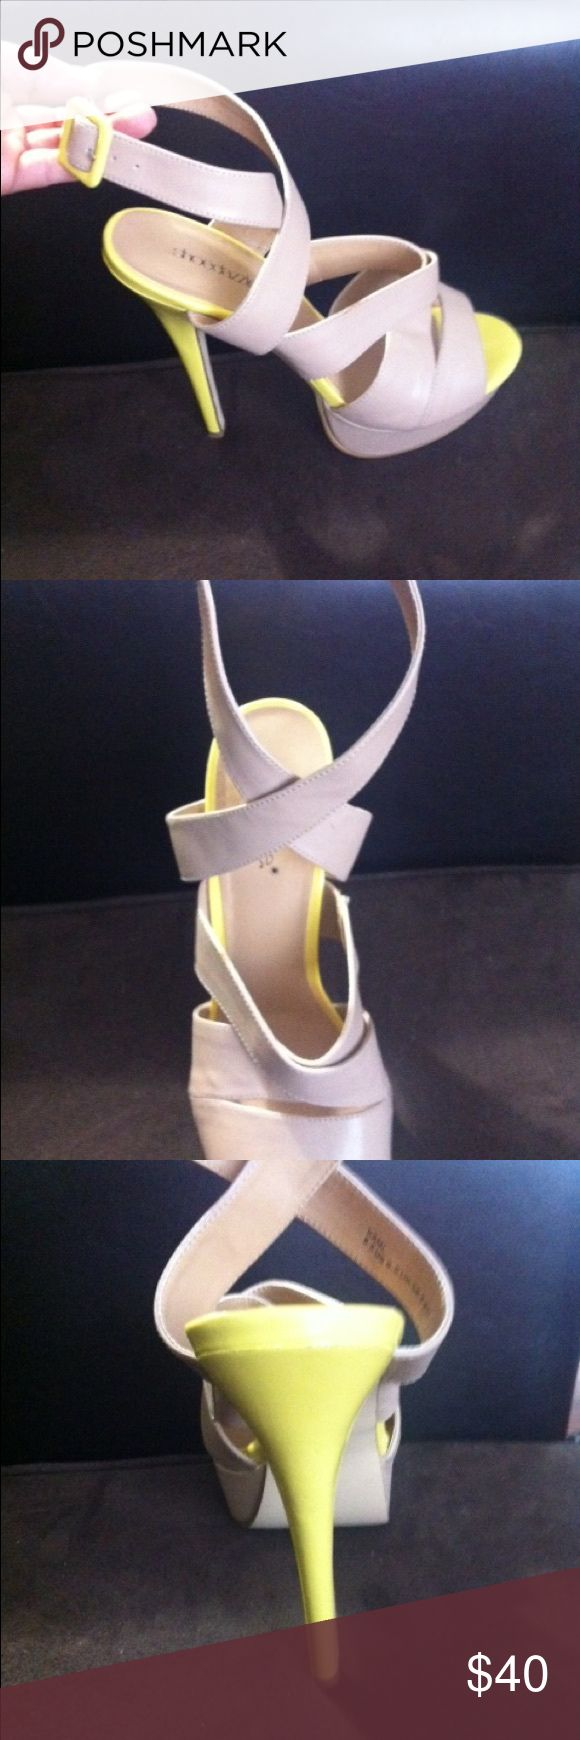 Beautiful ladies shoes size 8.5 Beautiful strappy, Tan/Yellow high heels, size 8.5. ShoeDazzle. Shoe Dazzle Shoes Heels